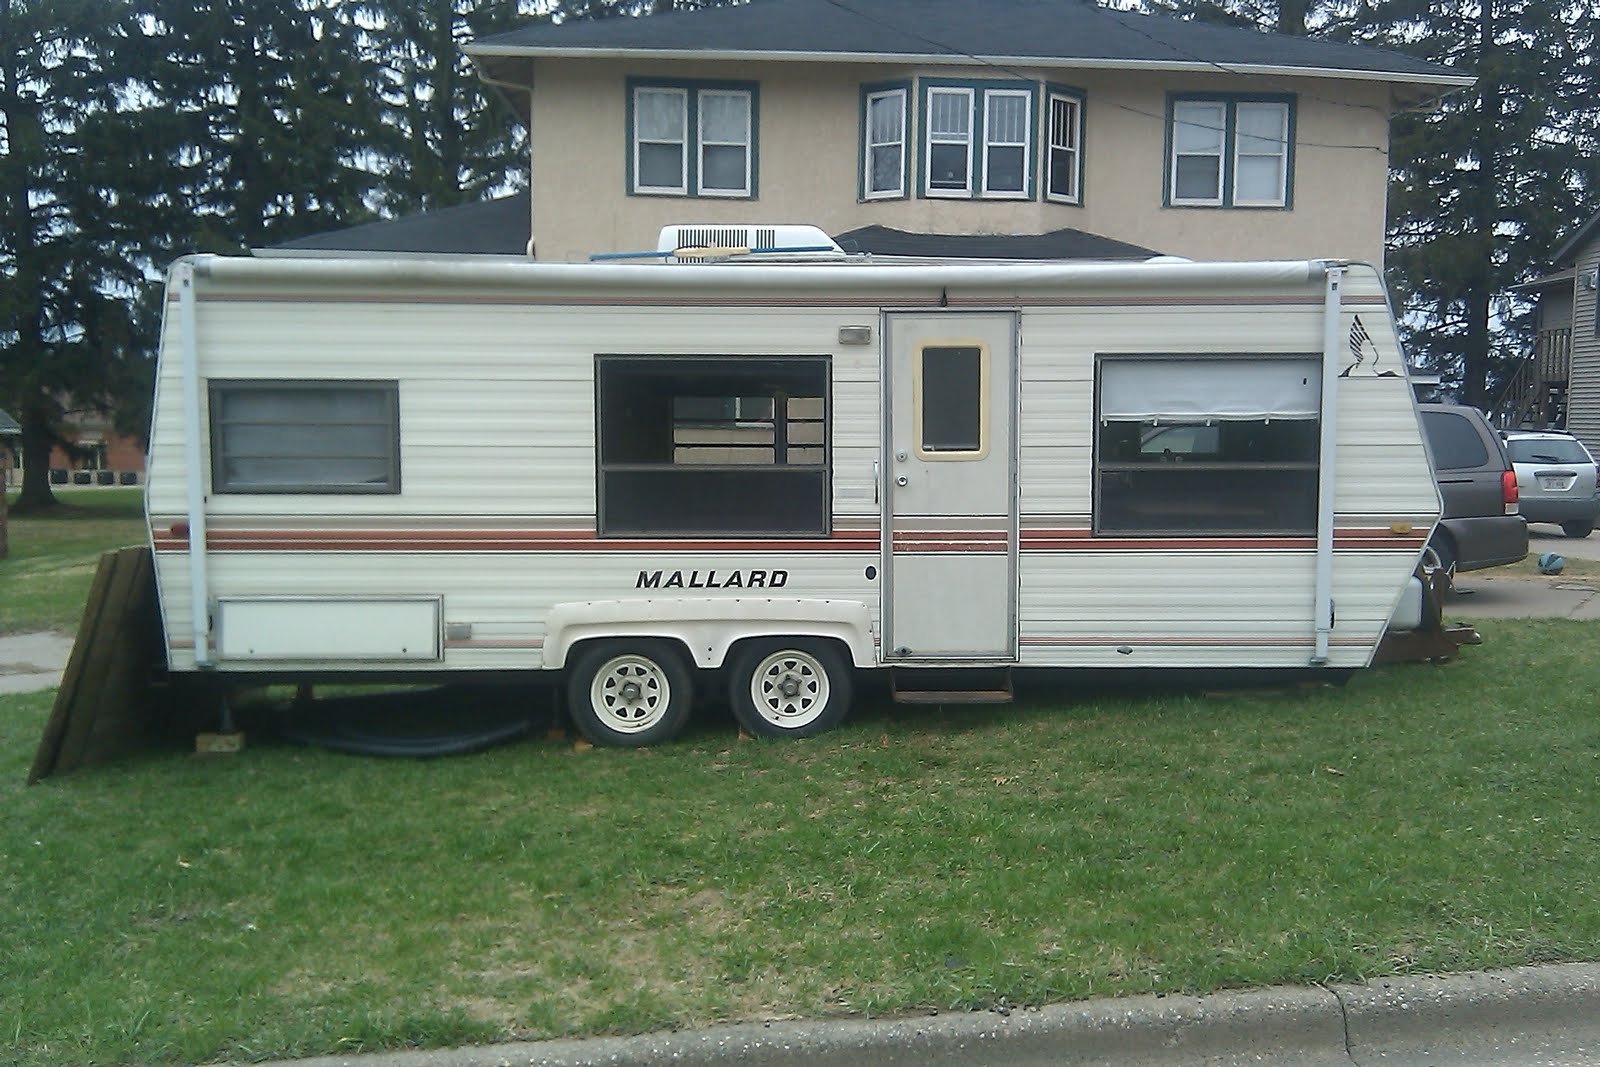 1995 Mallard 19 Travel Trailer for Sale [Stock No. T061973]